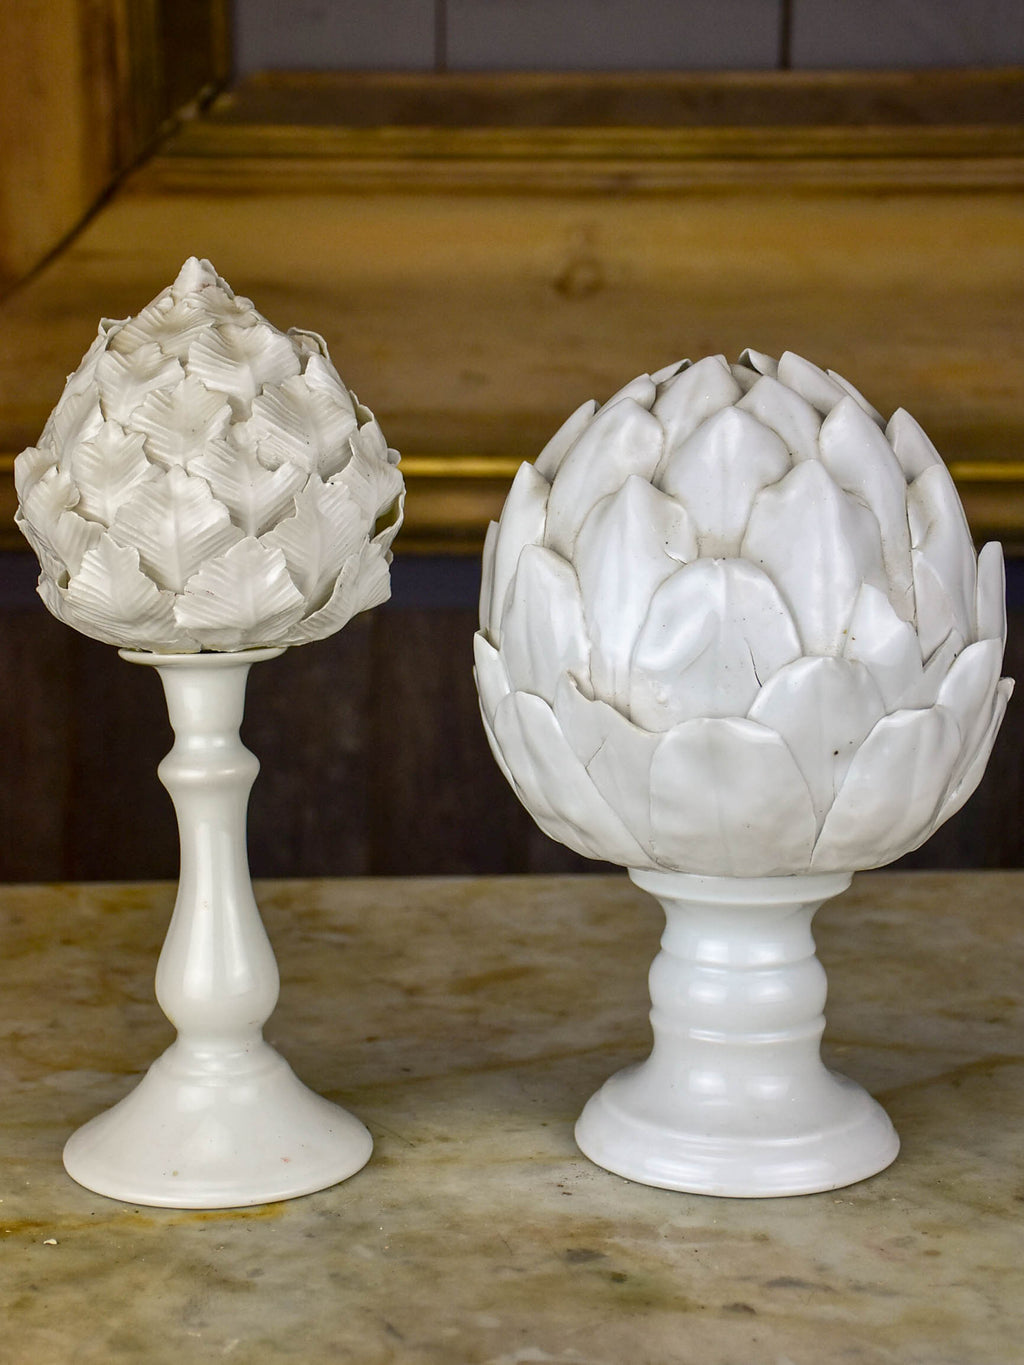 Two antique earthenware mounted artichoke sculptures